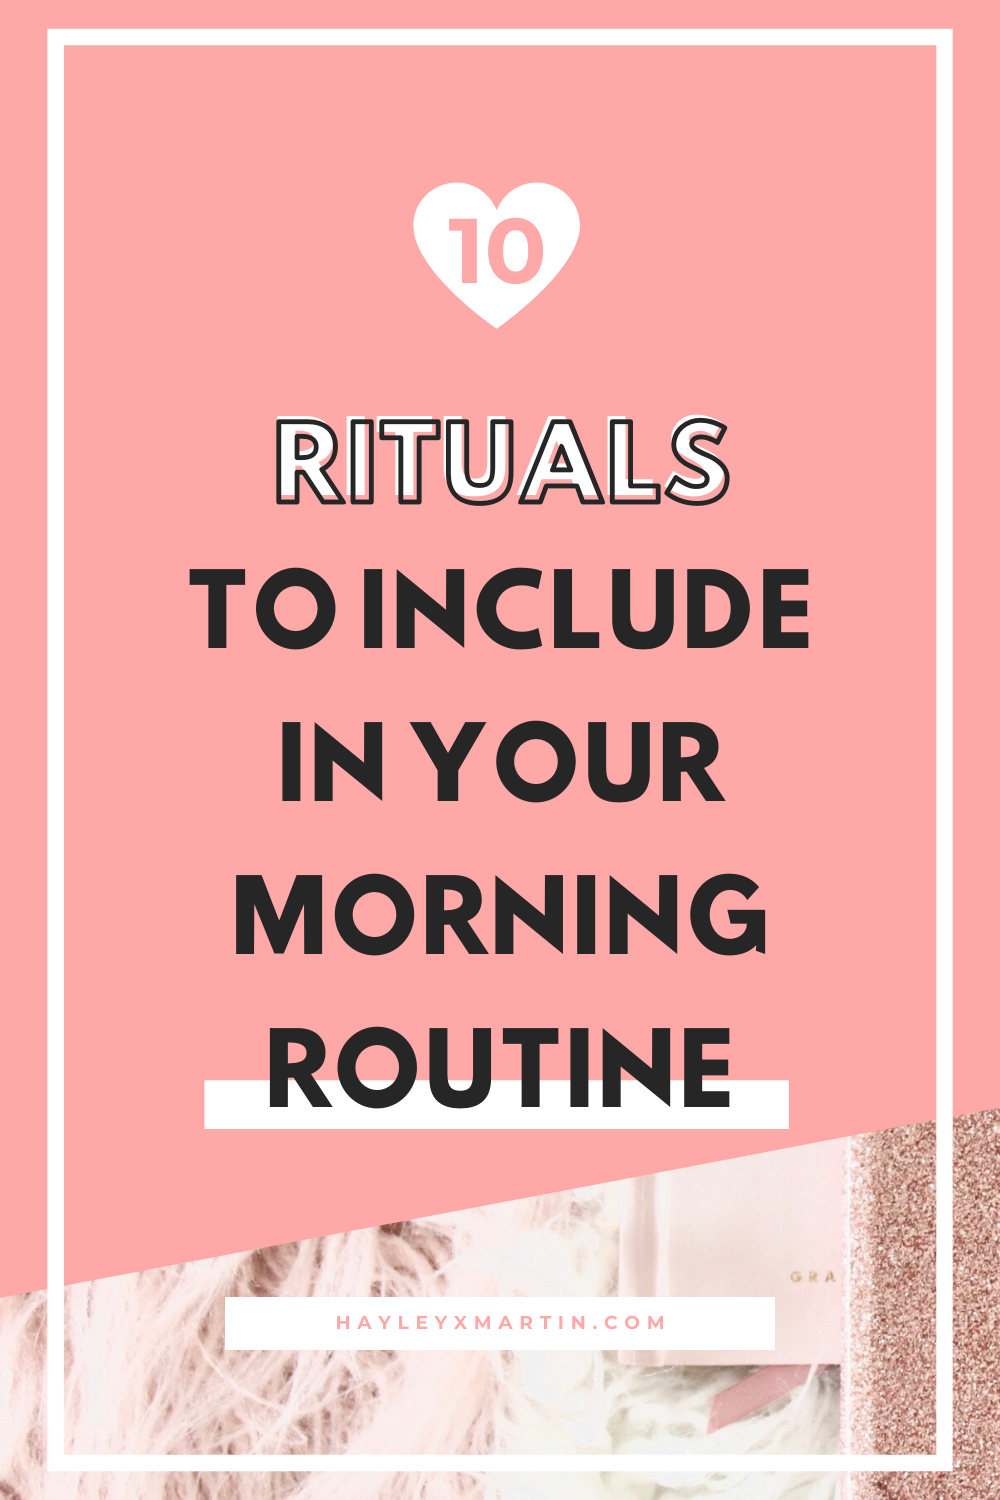 10 rituals to include in your morning routine | hayleyxmartin